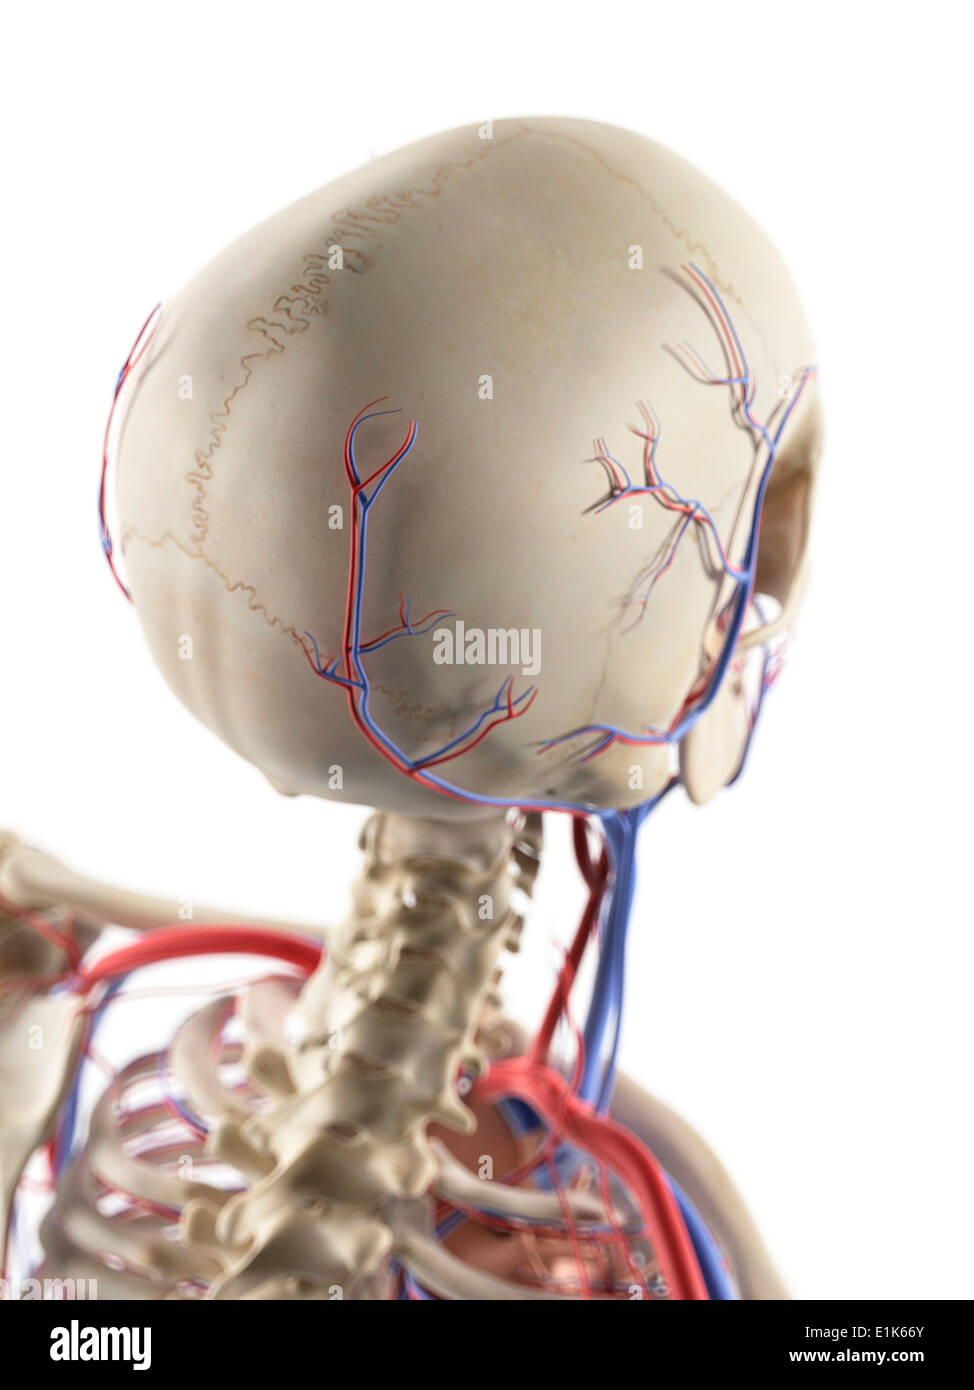 Human Blood Vessels In The Head And Neck Computer Artwork Stock